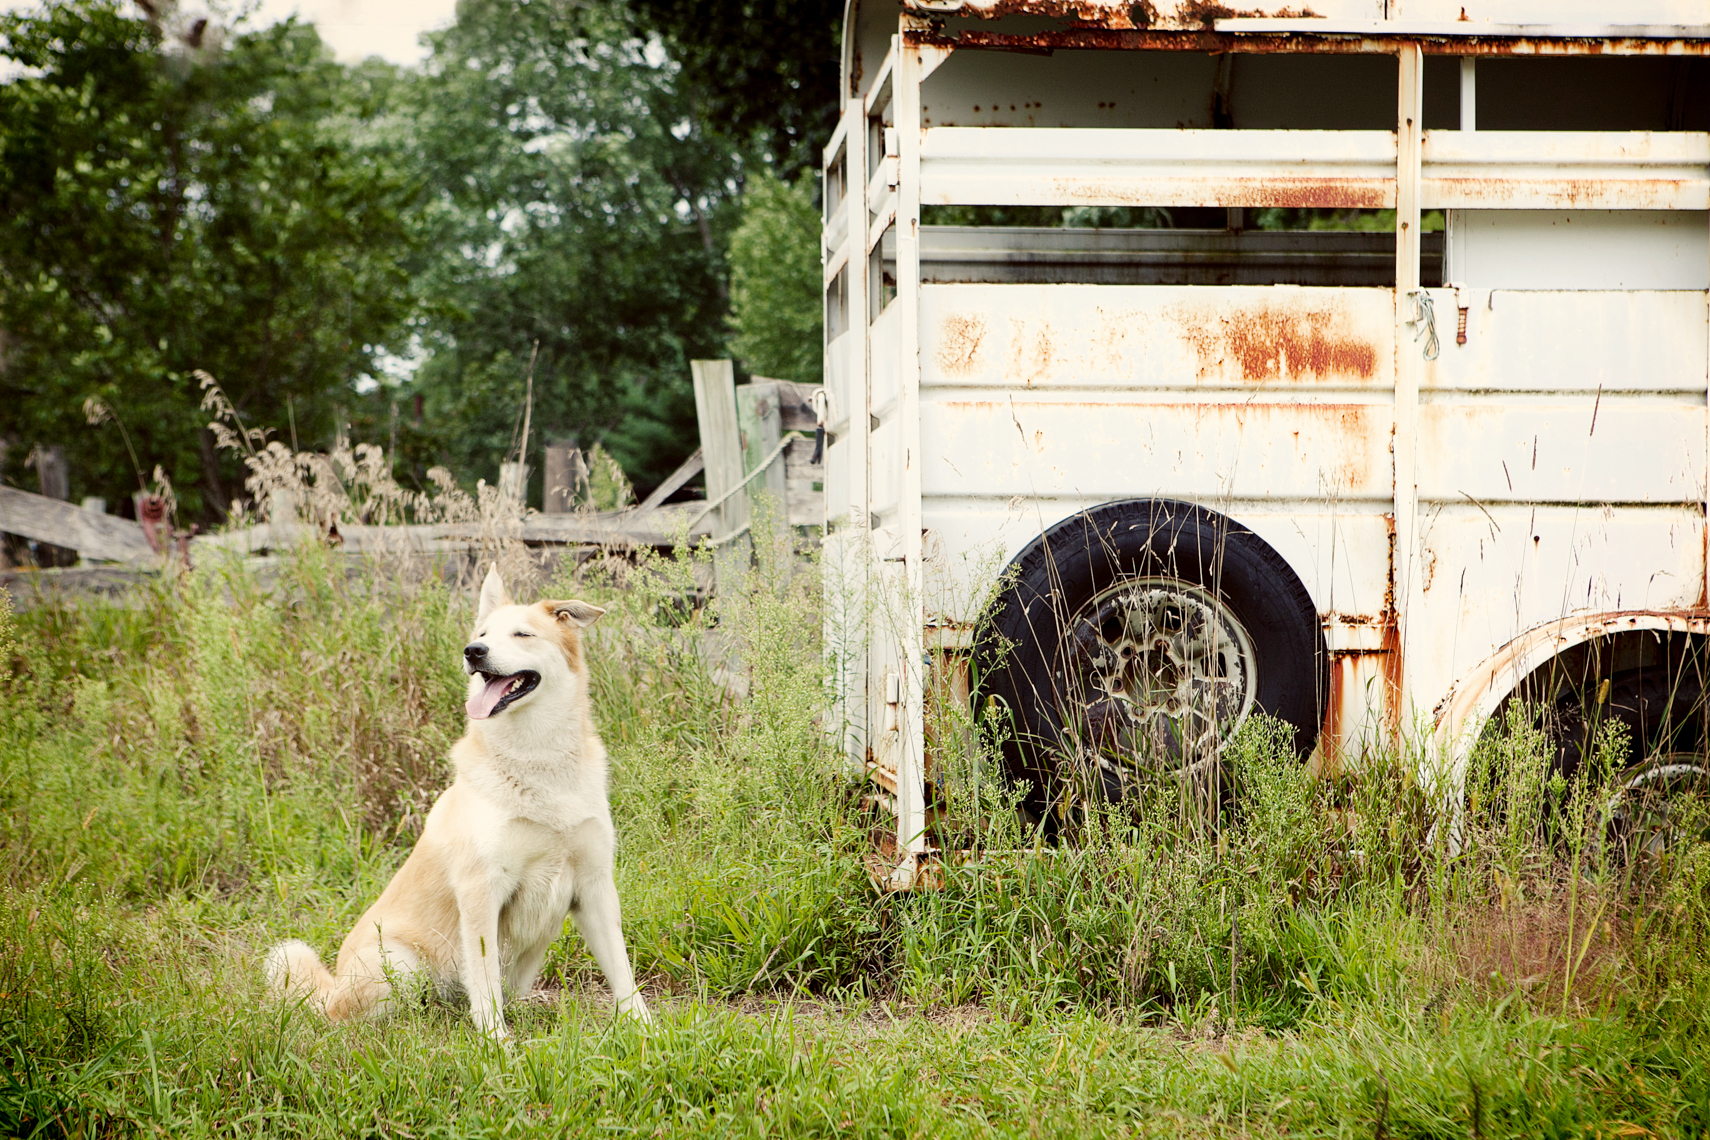 Farm dog in a field next to a horse trailer